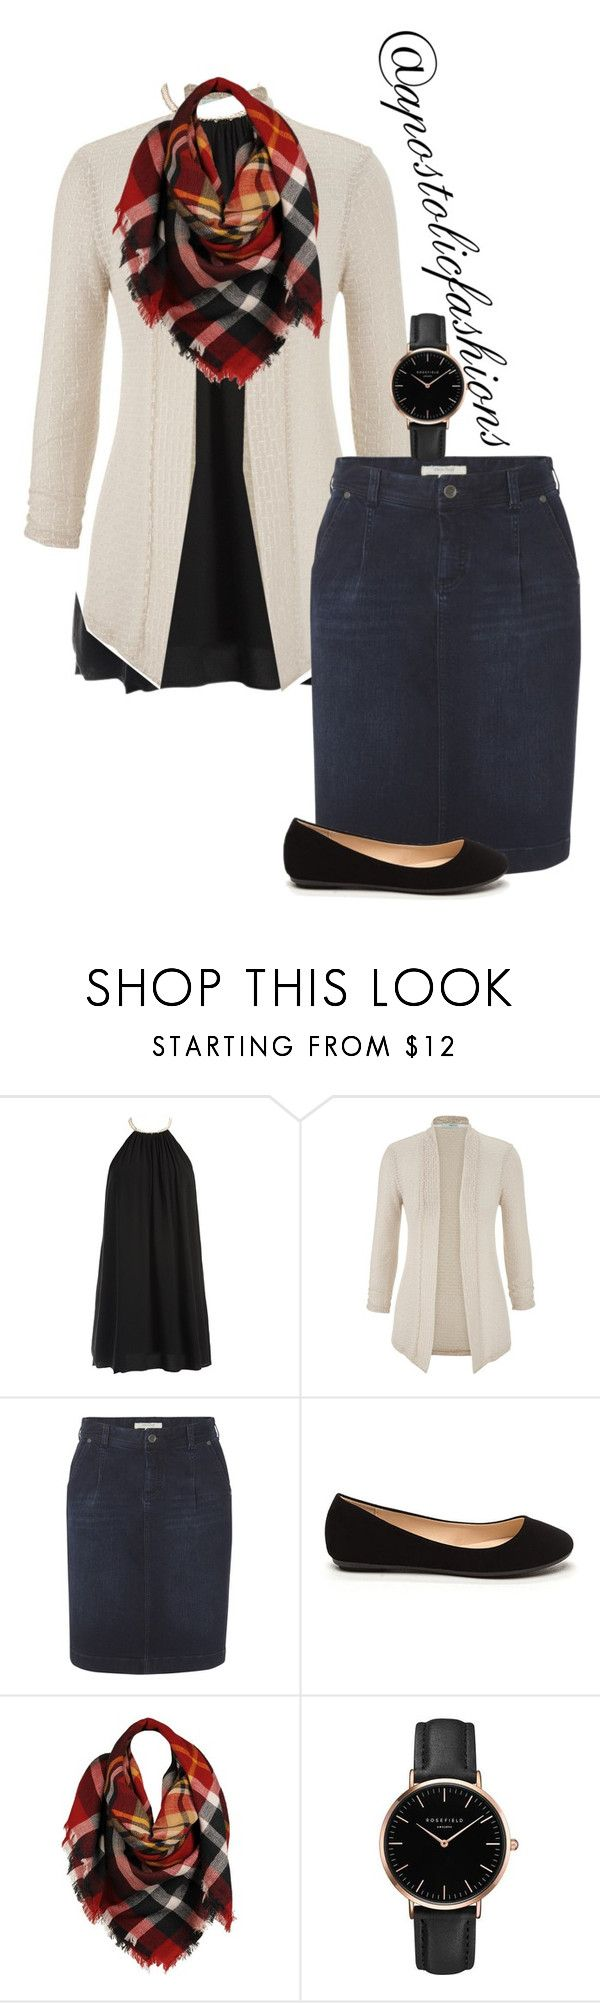 """""""Apostolic Fashions #1674"""" by apostolicfashions ❤ liked on Polyvore featuring Sans Souci, maurices, White Stuff, Sylvia Alexander and Topshop"""